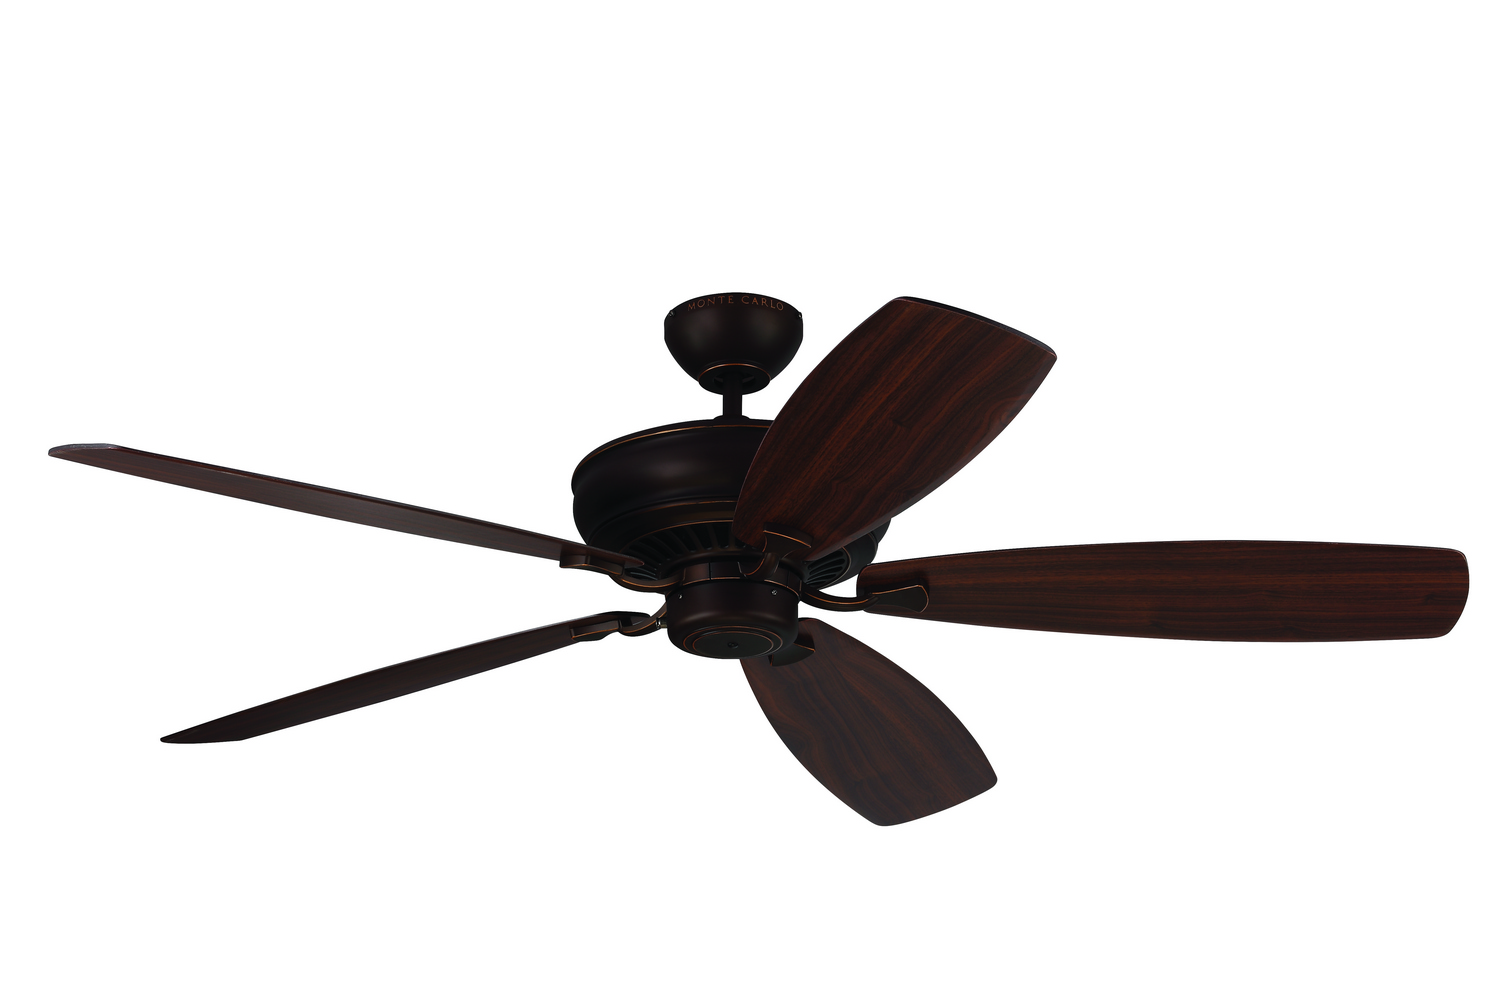 60 inch Ceiling Fan from the Bonneville Max collection by Monte Carlo 5BHM60RB